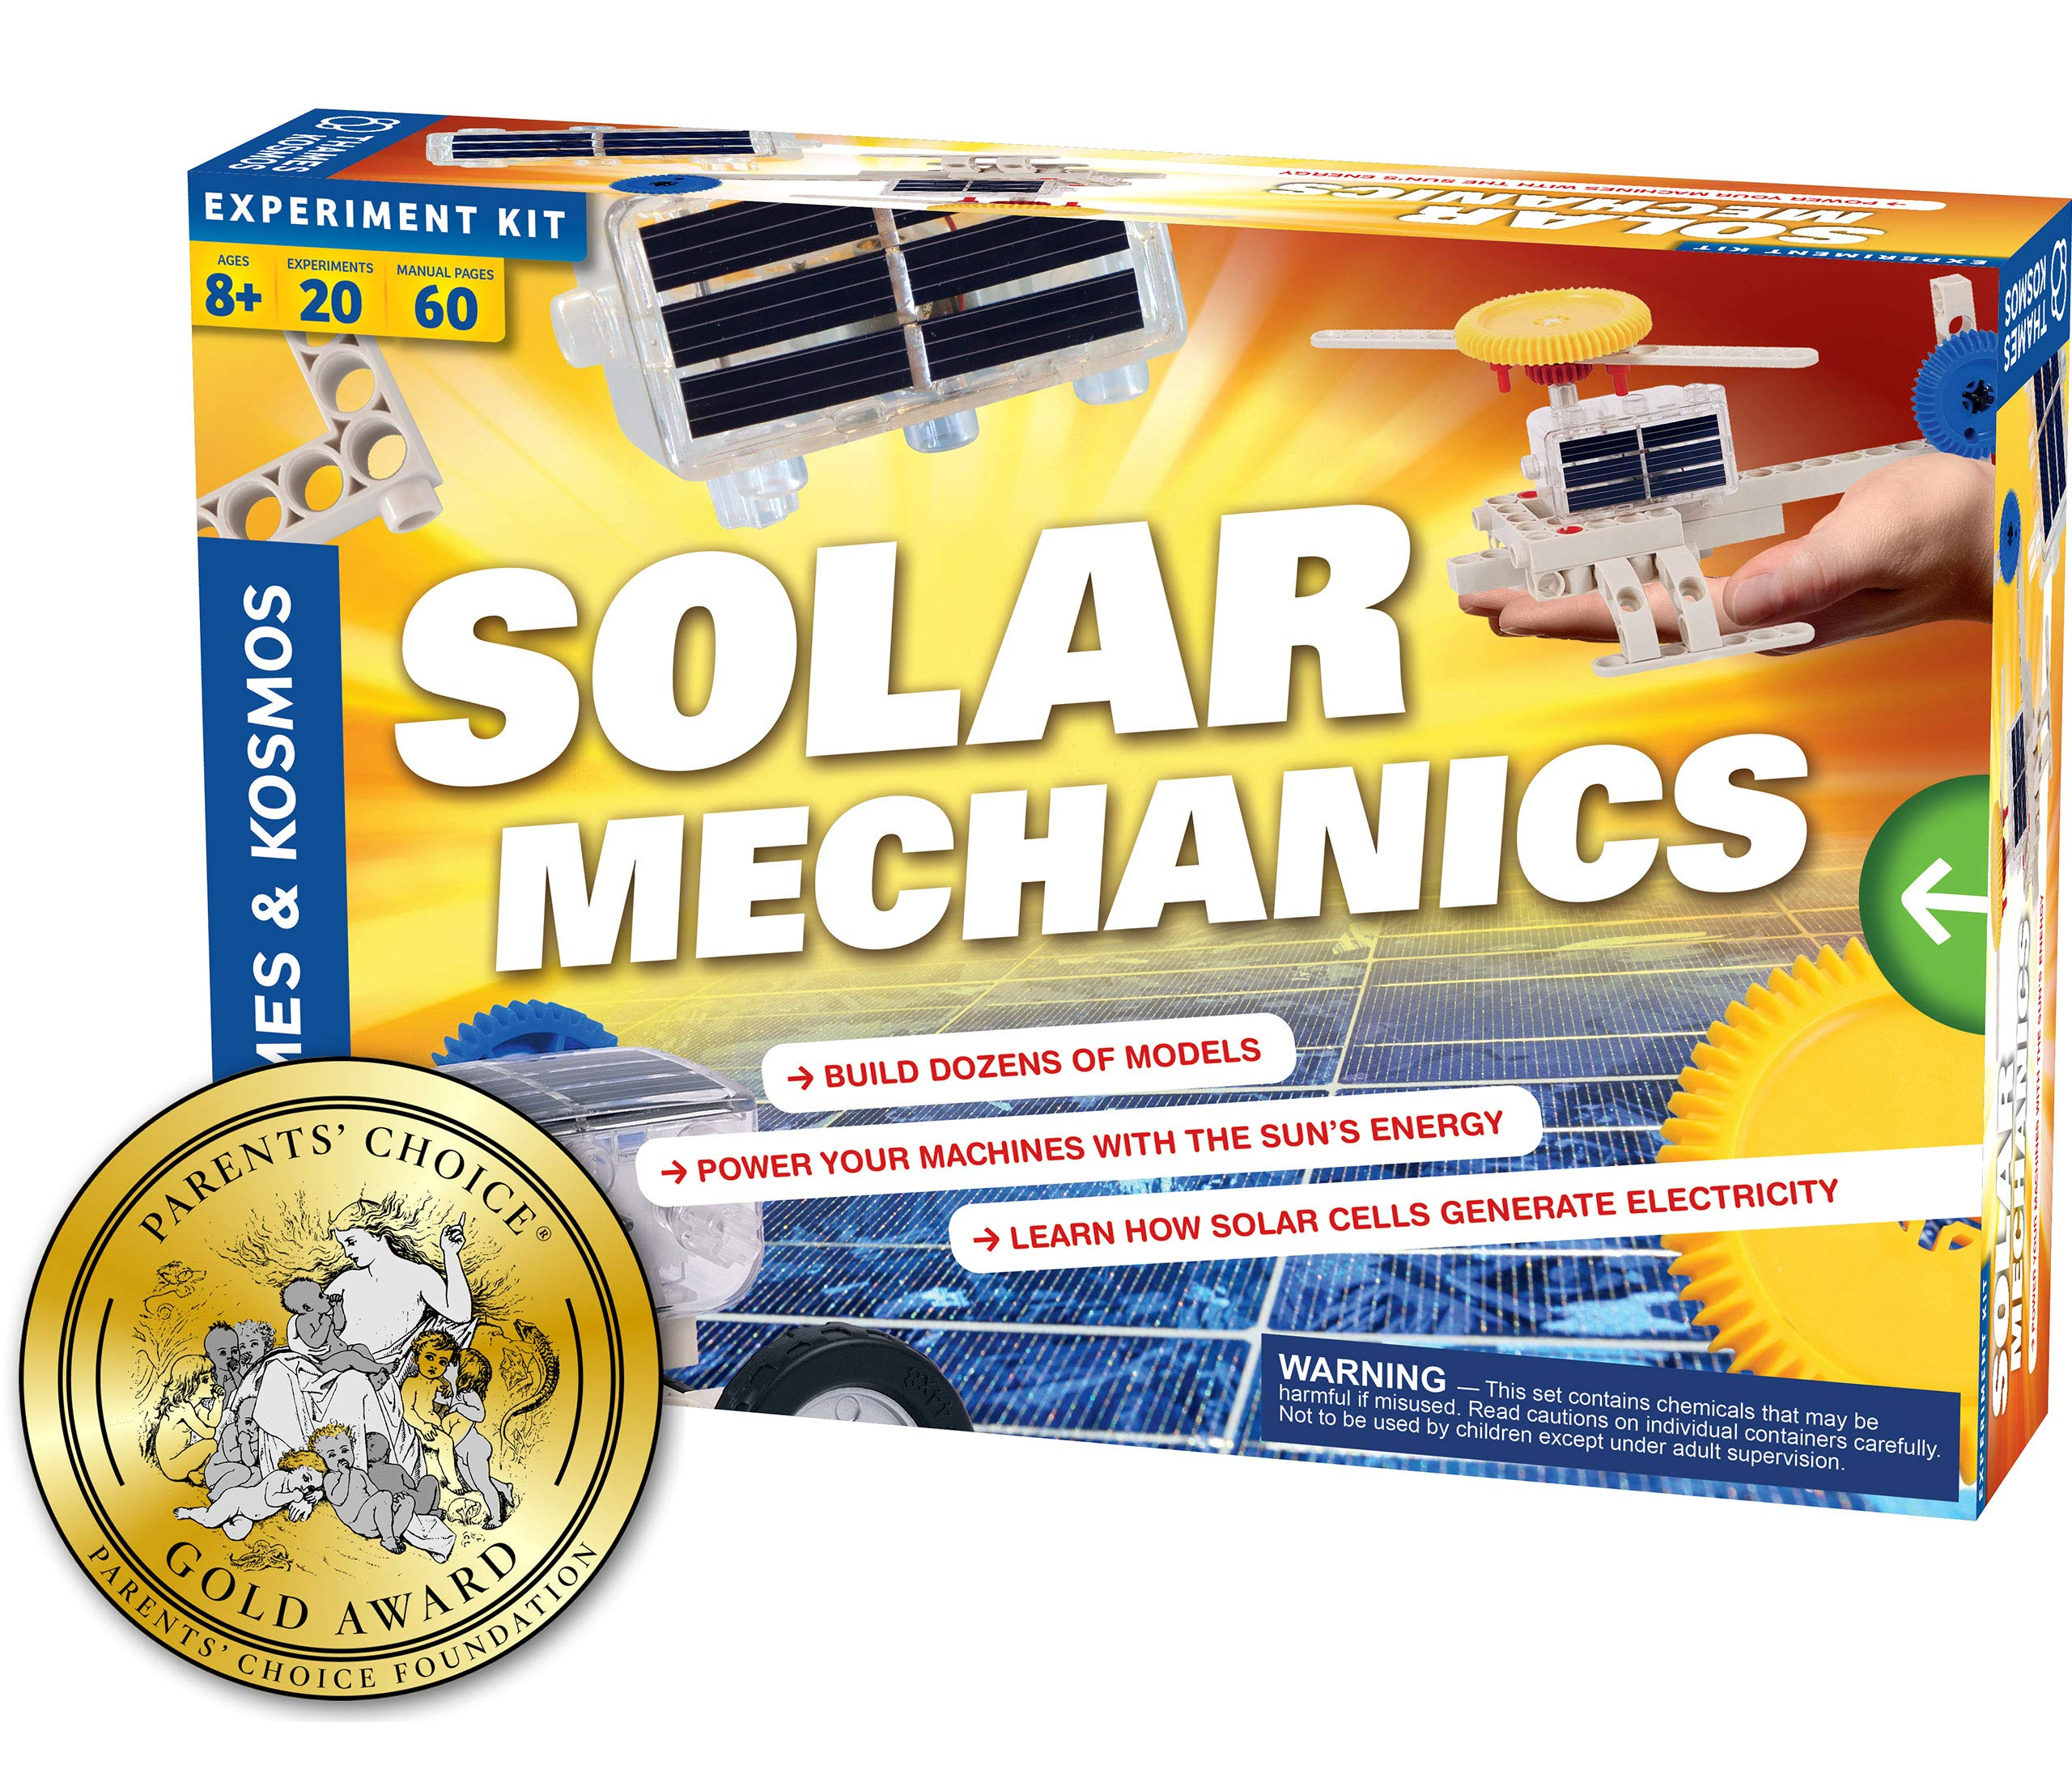 Thames & Kosmos Solar Mechanics | Science Experiment Kit | Build 20 Models Powered by The Sun | Ages 8-12+ | 60 Page Full Color Stem Manual | Parents' Choice Gold Award Winner by Thames & Kosmos